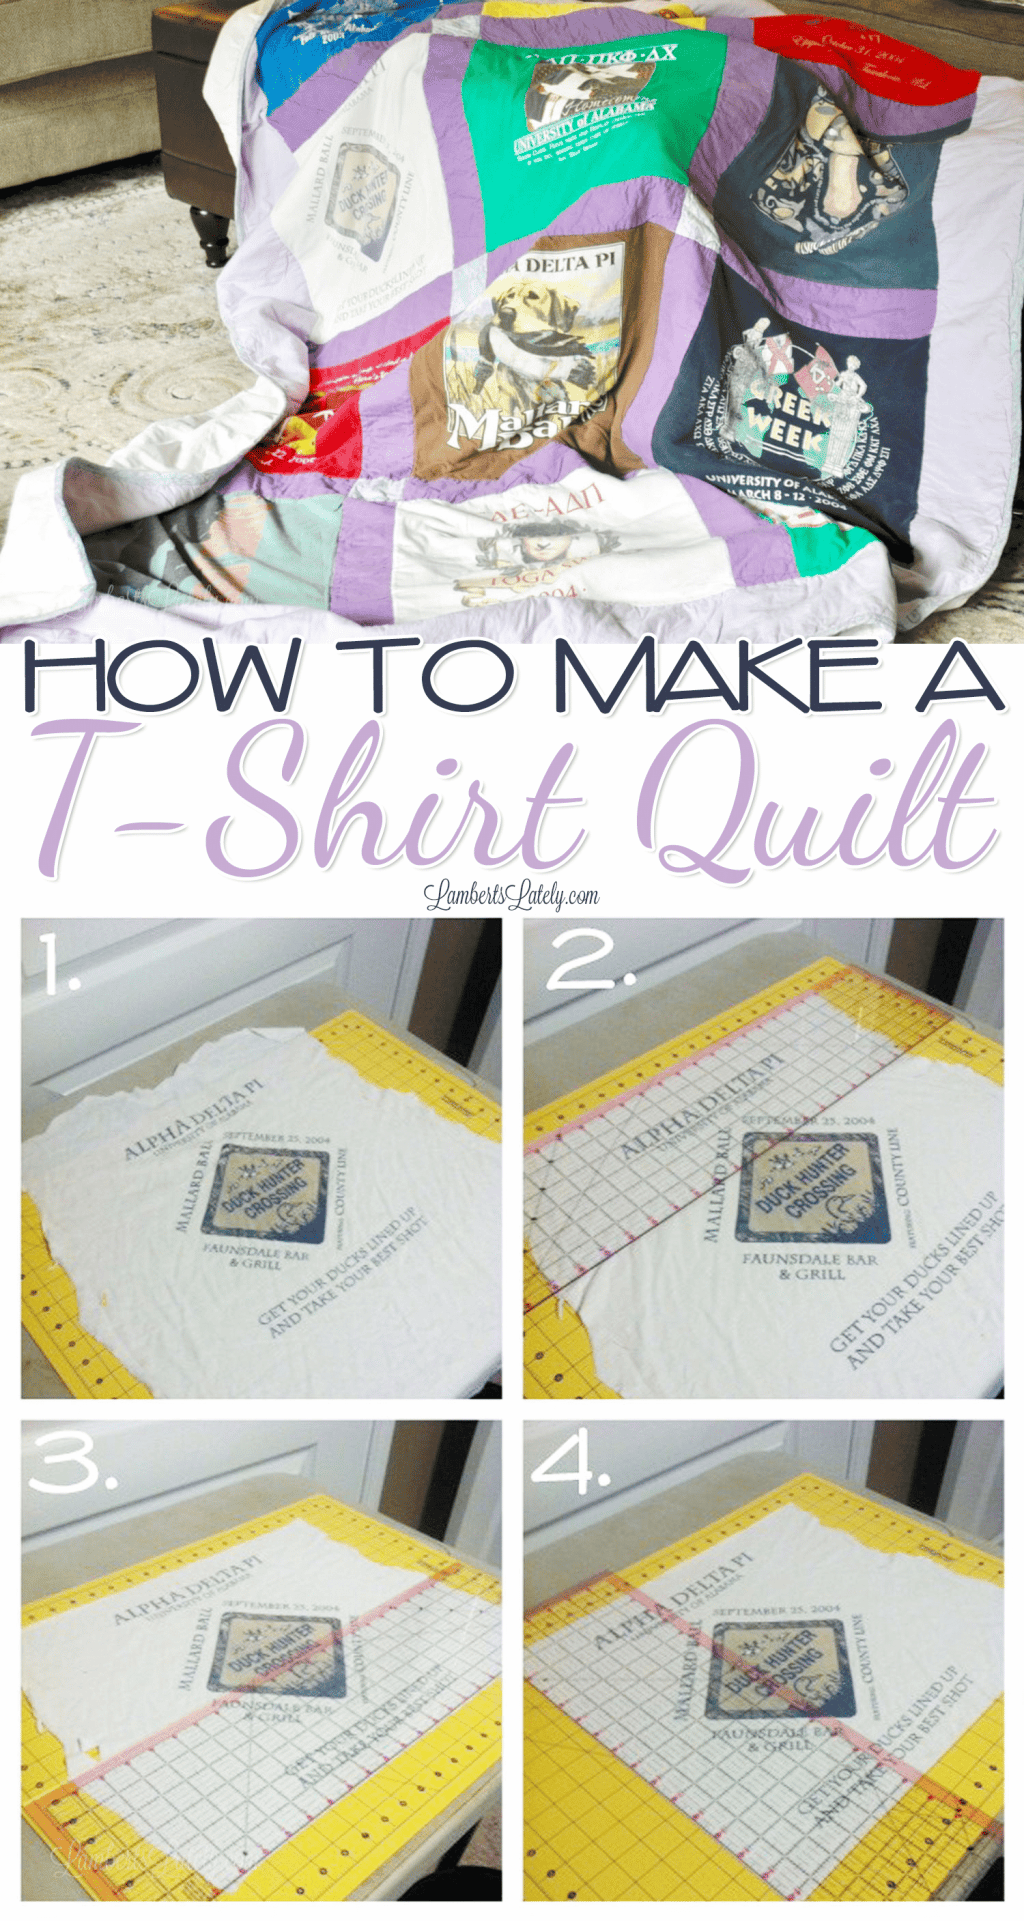 This is a great tutorial for how to make a T-Shirt Quilt out of old sorority/high school shirts - the DIY pattern, layout, and assembly instructions make it so easy, even for beginners!